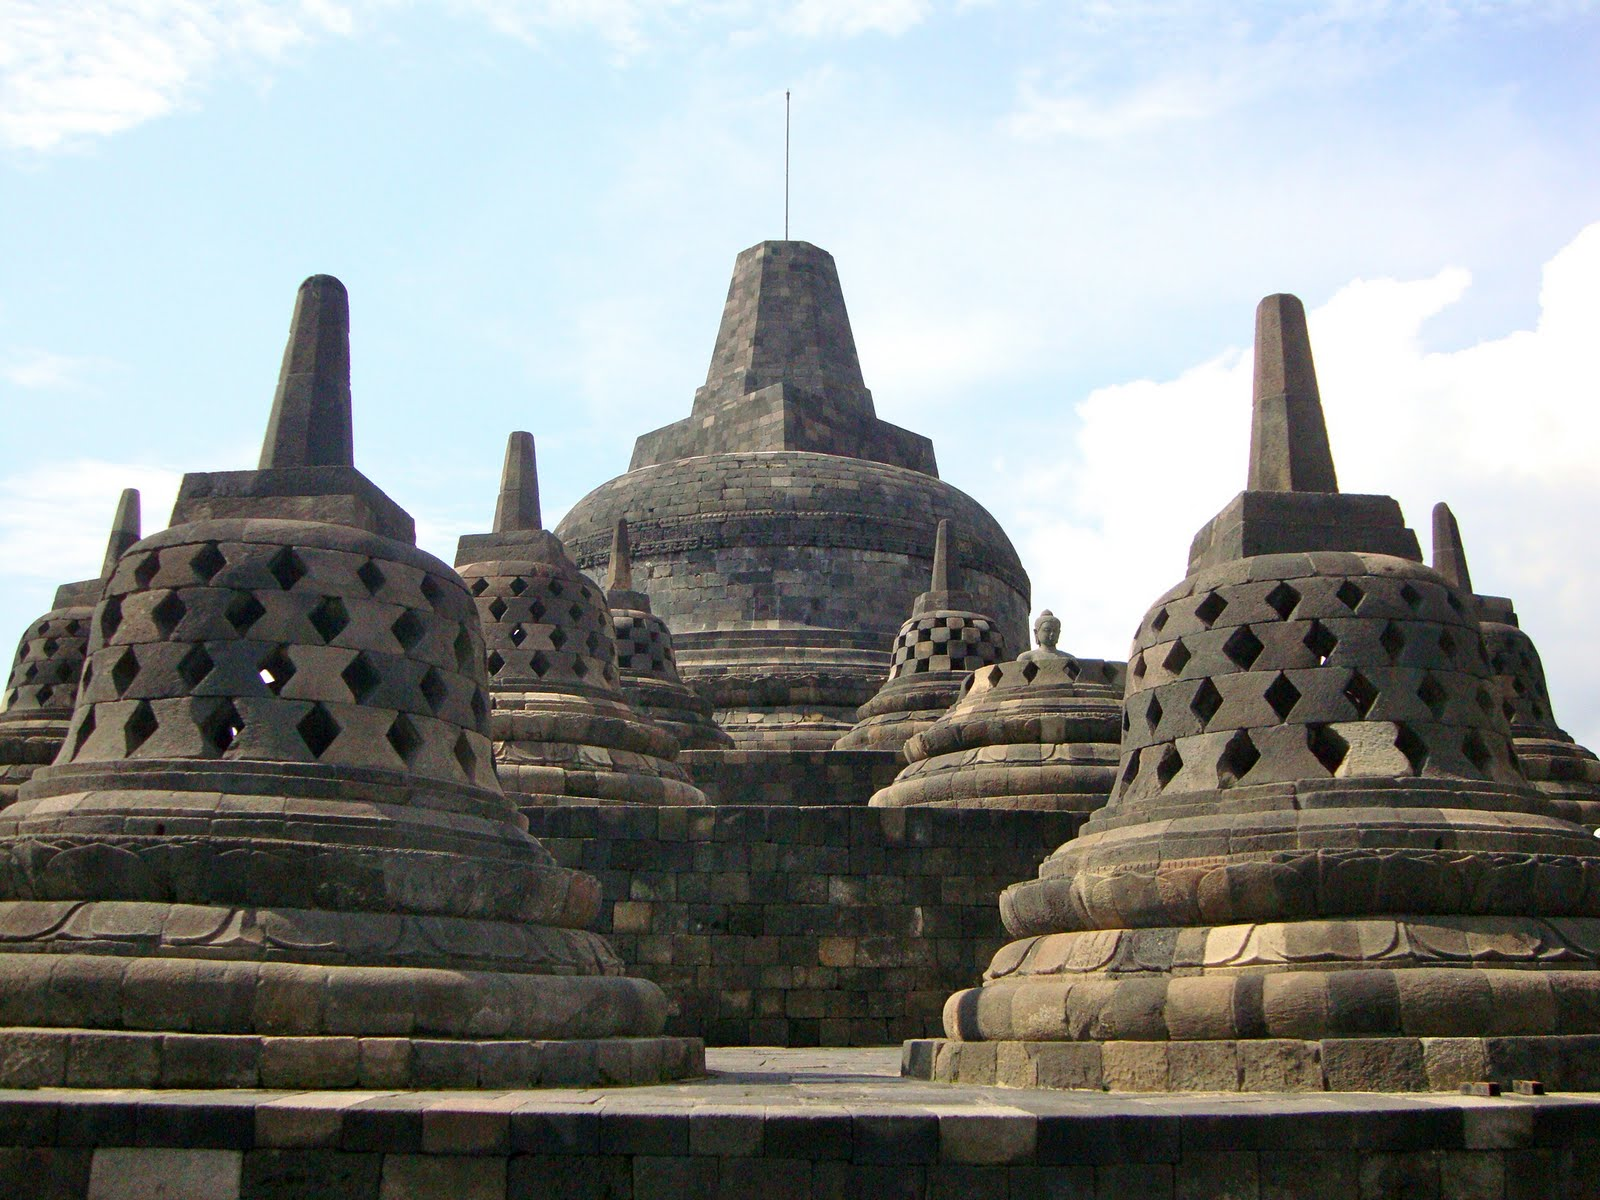 buddhist singles in north java Meet buddhist singles in mocksville interested in meeting new people to date on zoosk over 30 million single people are using zoosk to find people to date.